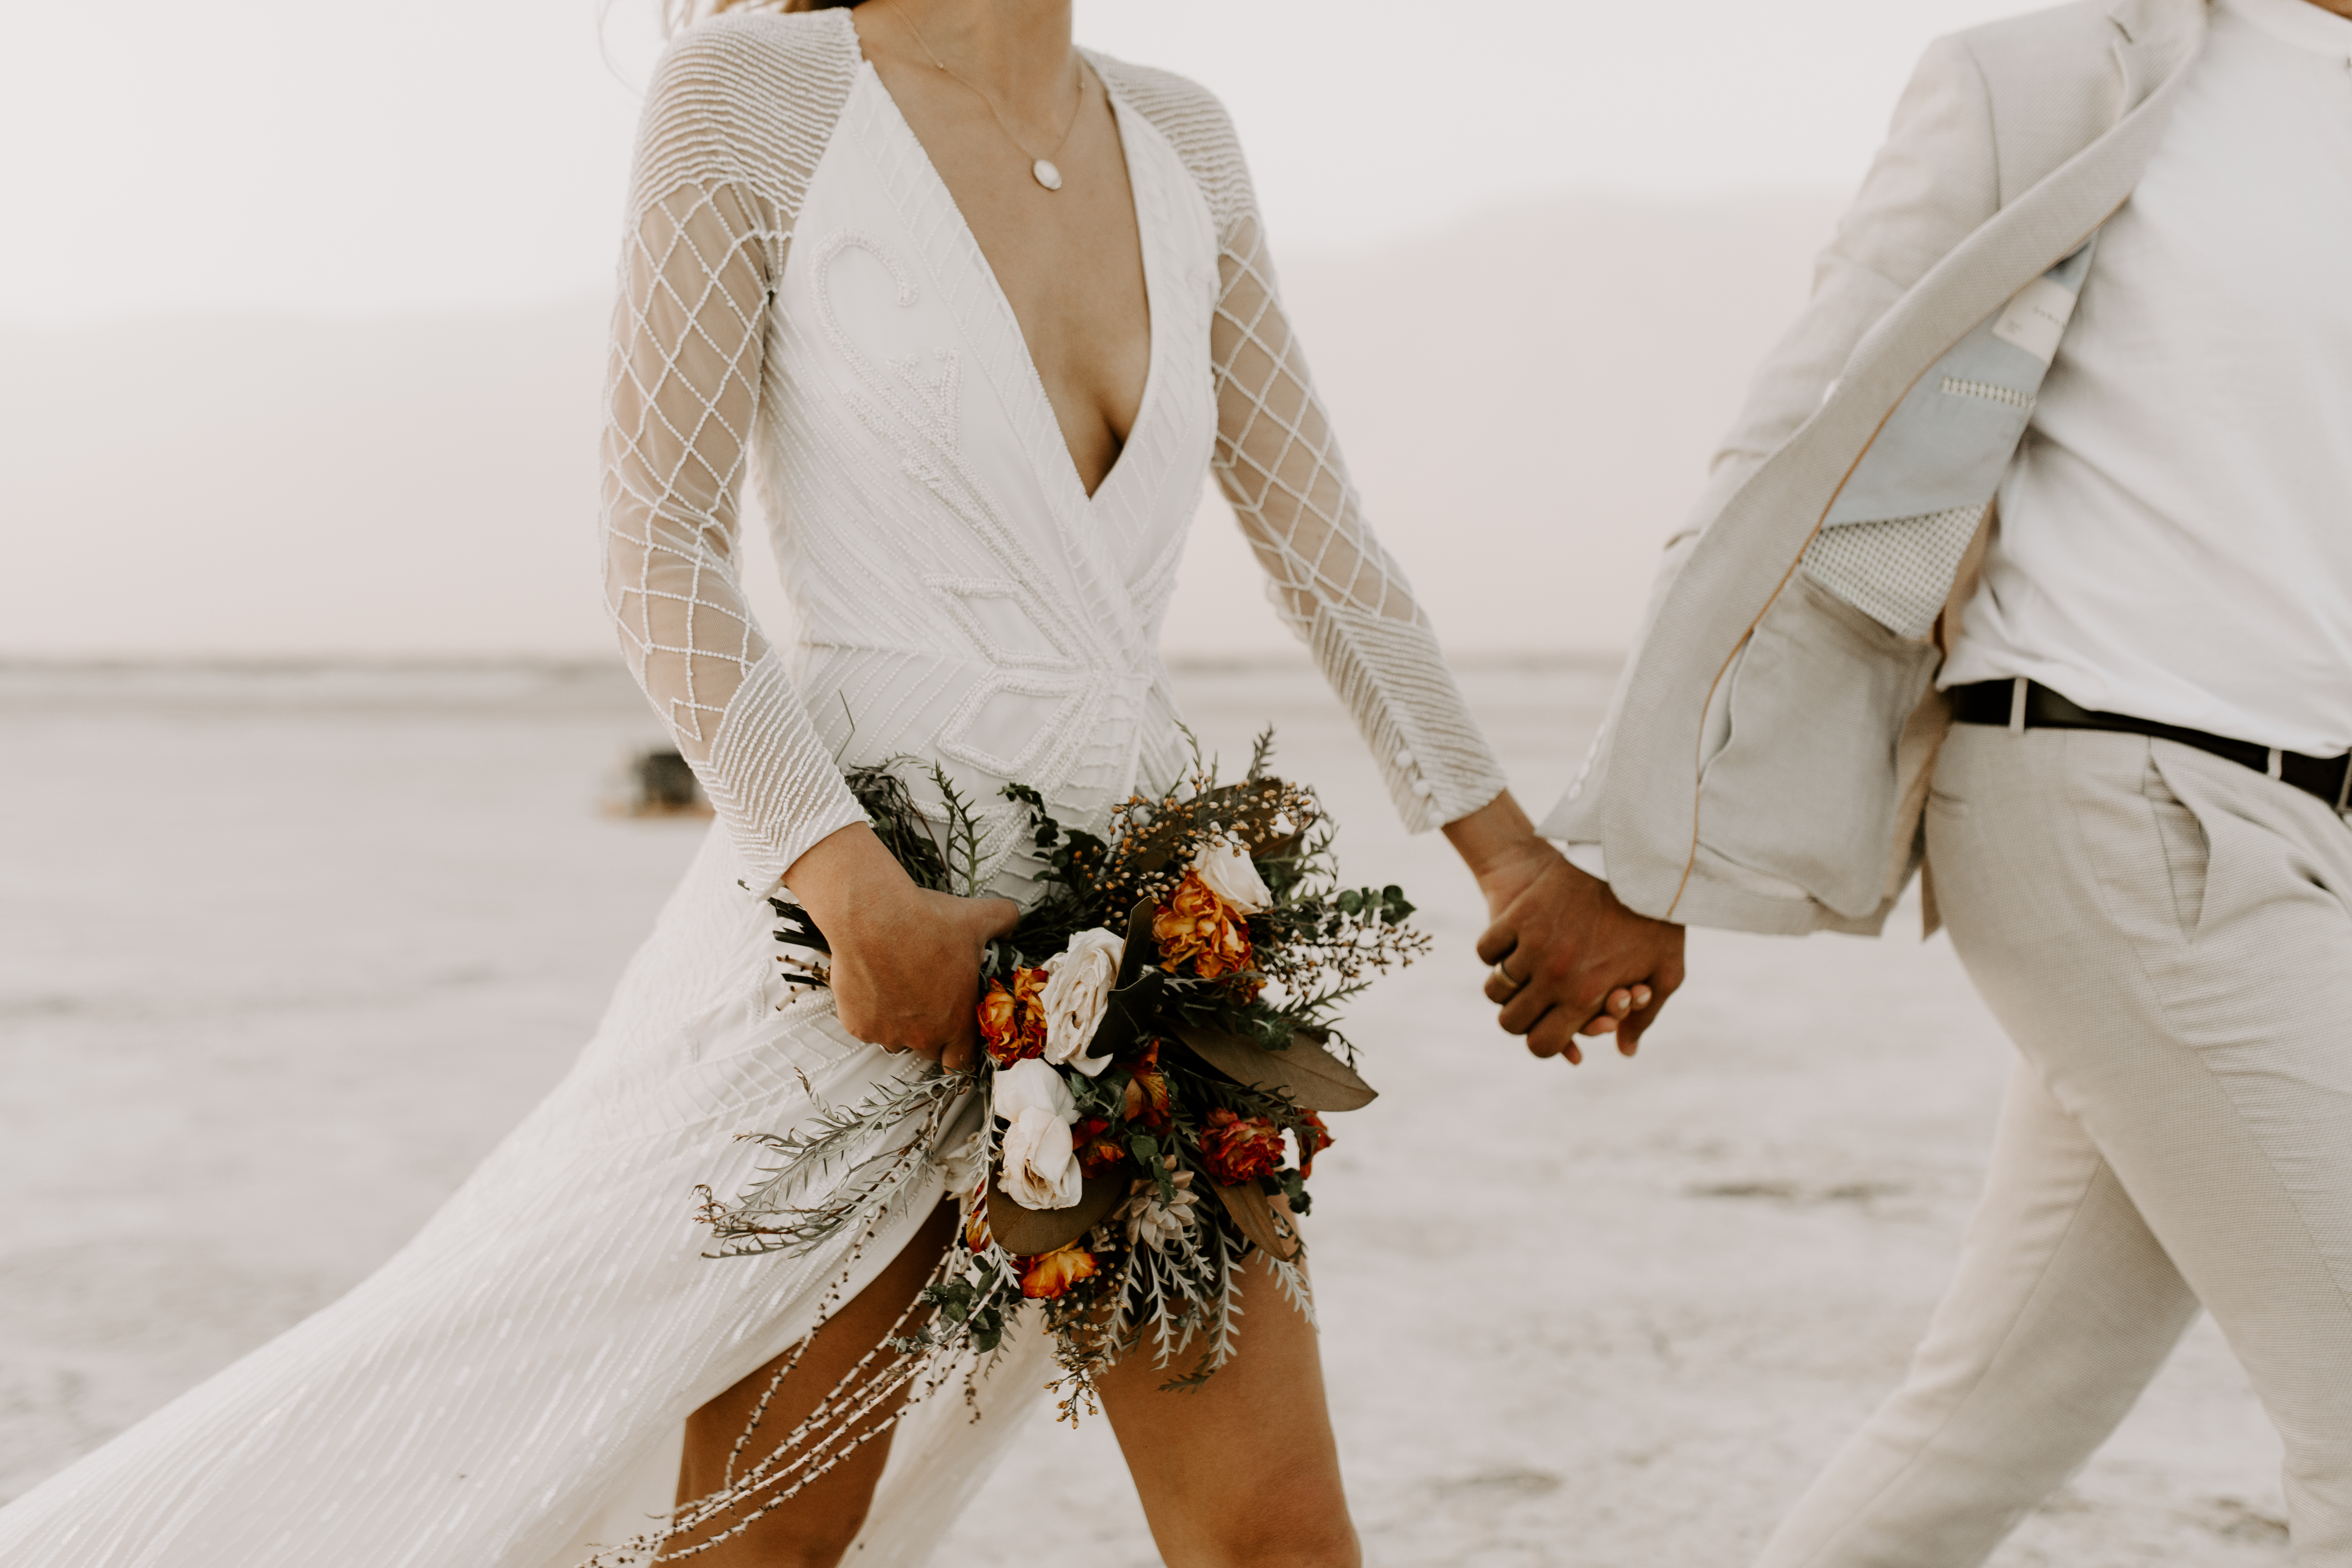 This white and firey red toned wedding shoot gave me so many feelings. The still white stillness of the dessert has always shocked me. Stark. Stunning. I loved the vibrant deep tones of this bouquet and how much it complemented the dessert.